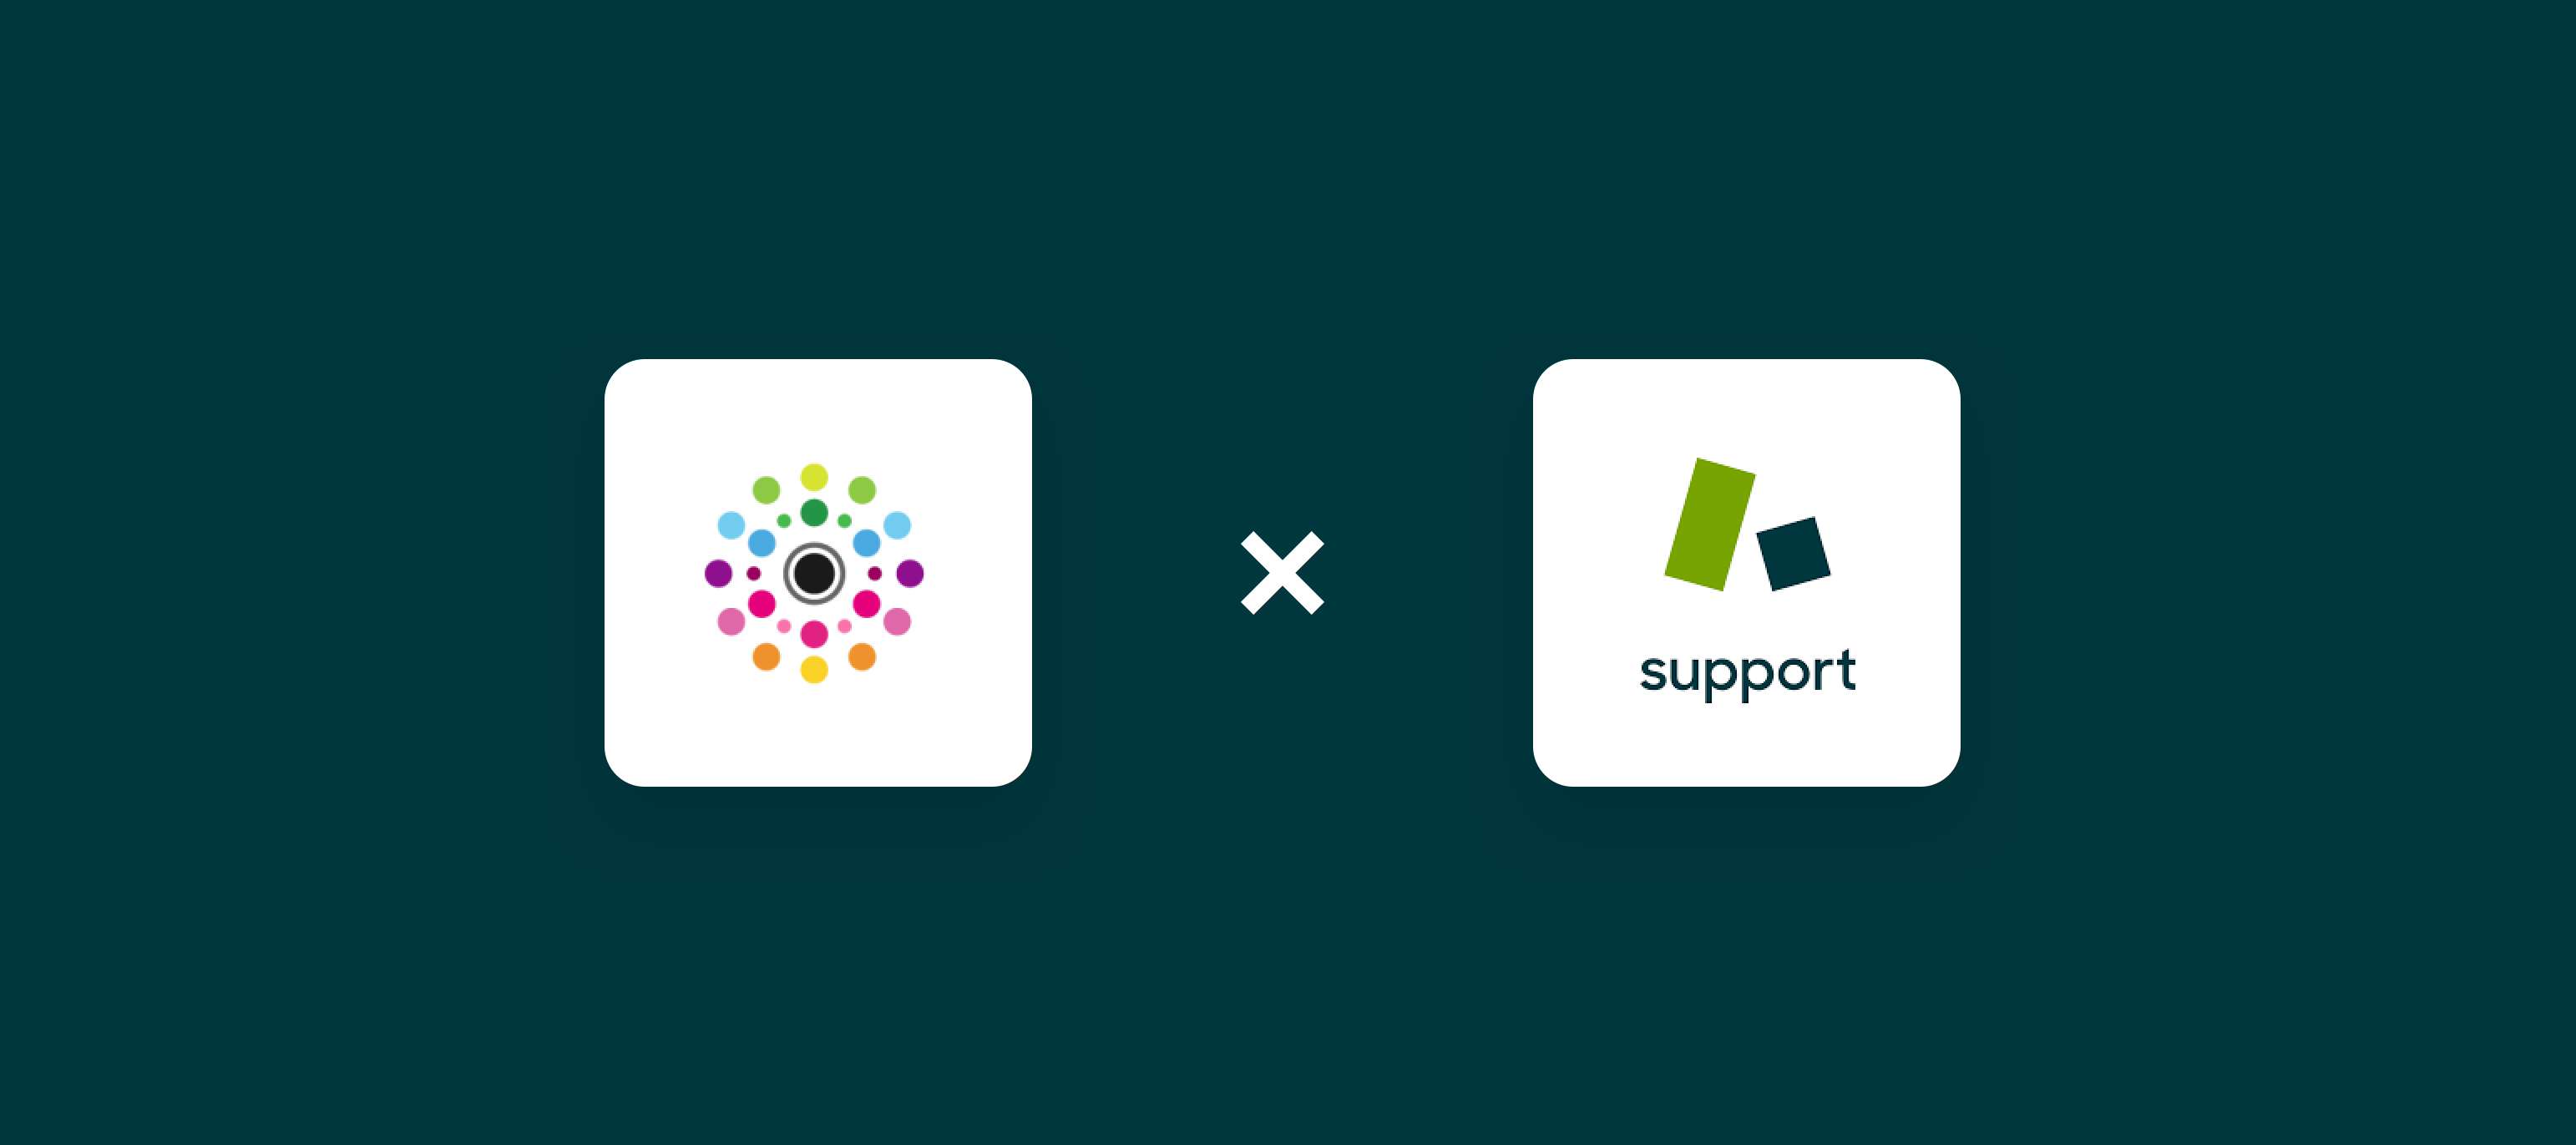 Search for Zendesk Guide content through your inSided community platform 🕵️♀️